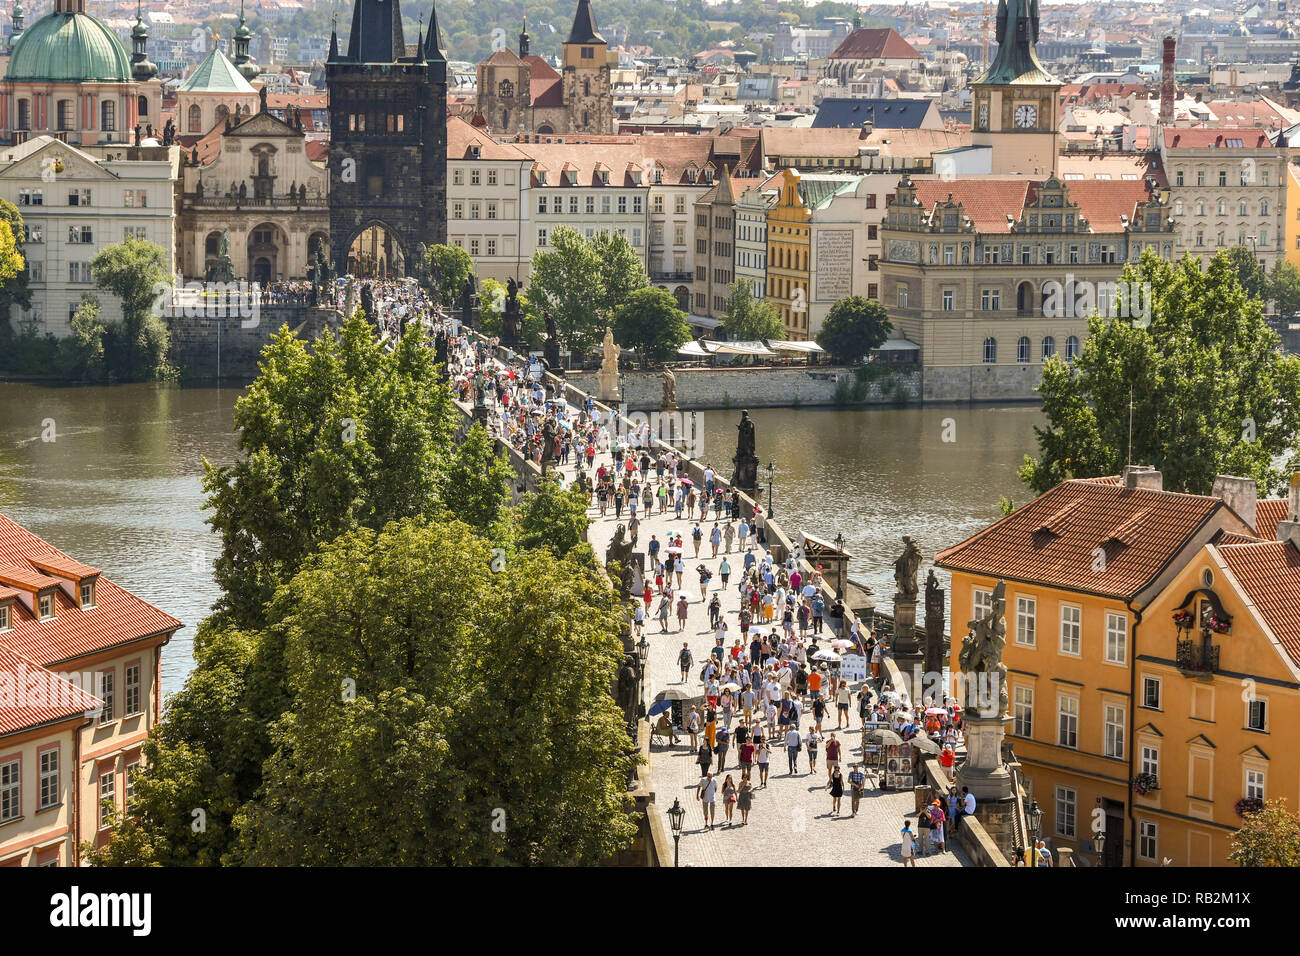 PRAGUE, CZECH REPUBLIC - JULY 2018: Aerial view of the Charles Bridge in Prague from from the top of the Lesser Town Bridge Tower. Stock Photo